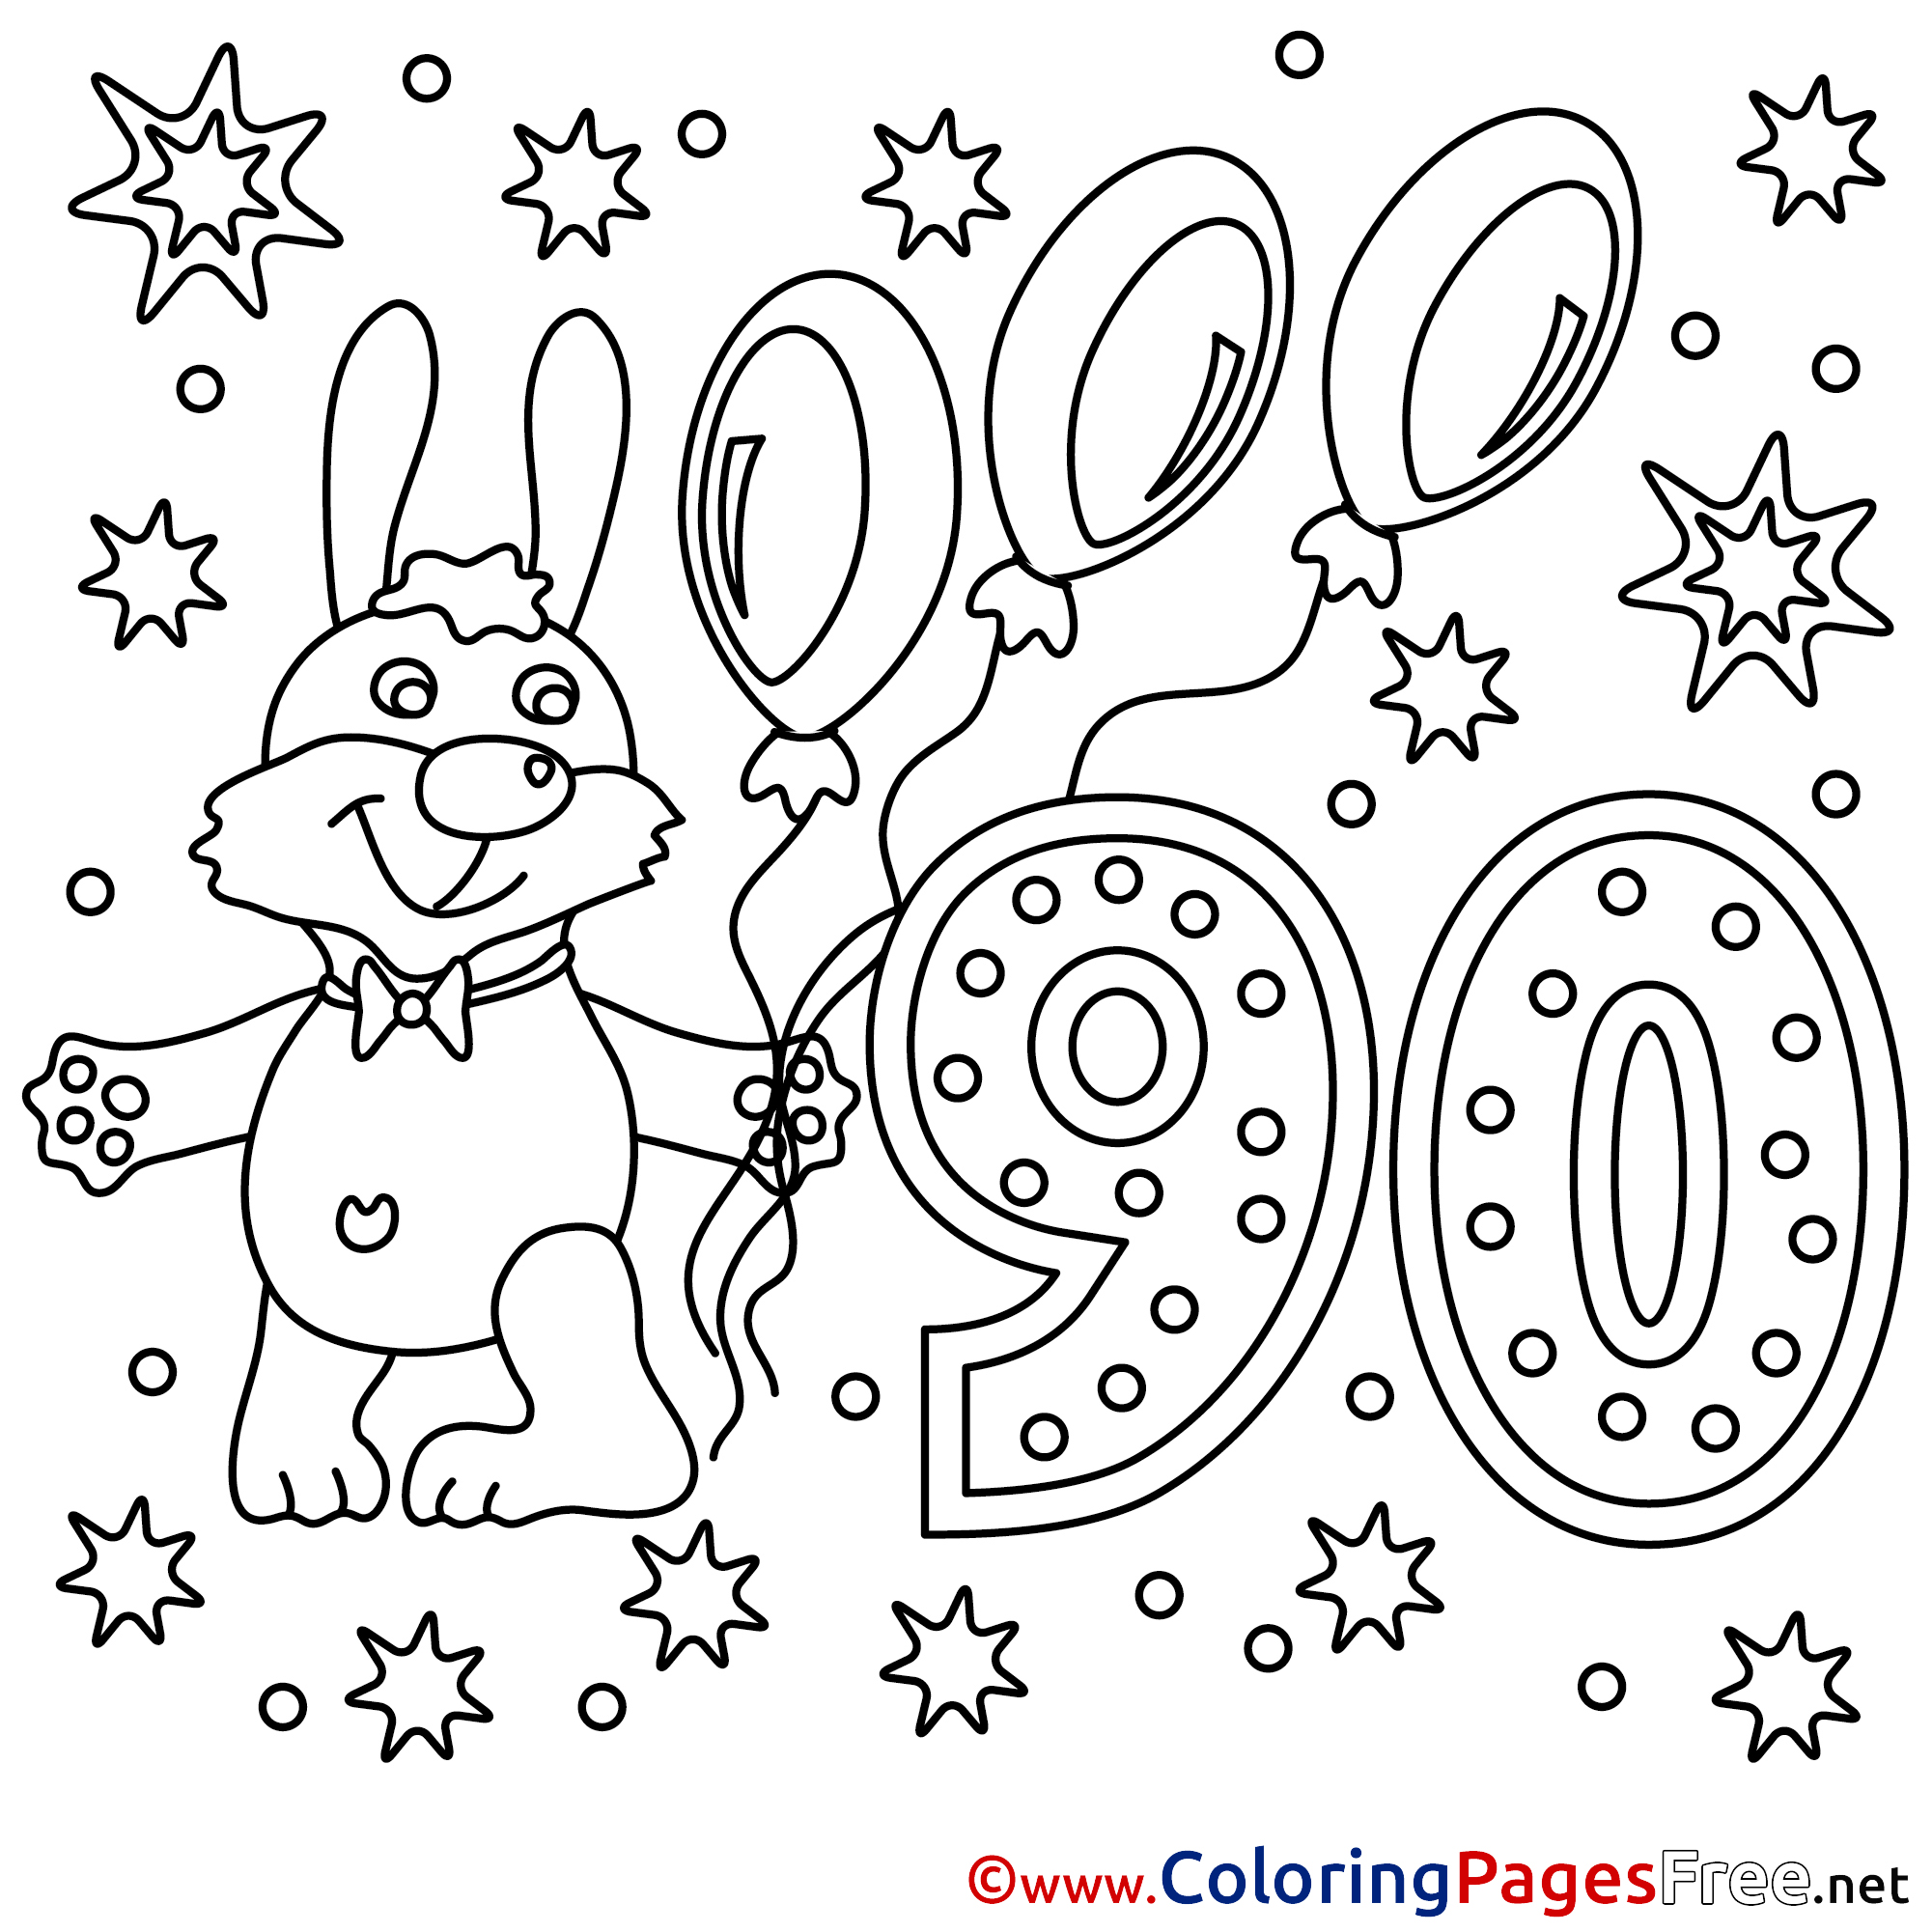 90s coloring sheets 90 years download happy birthday coloring pages sheets coloring 90s